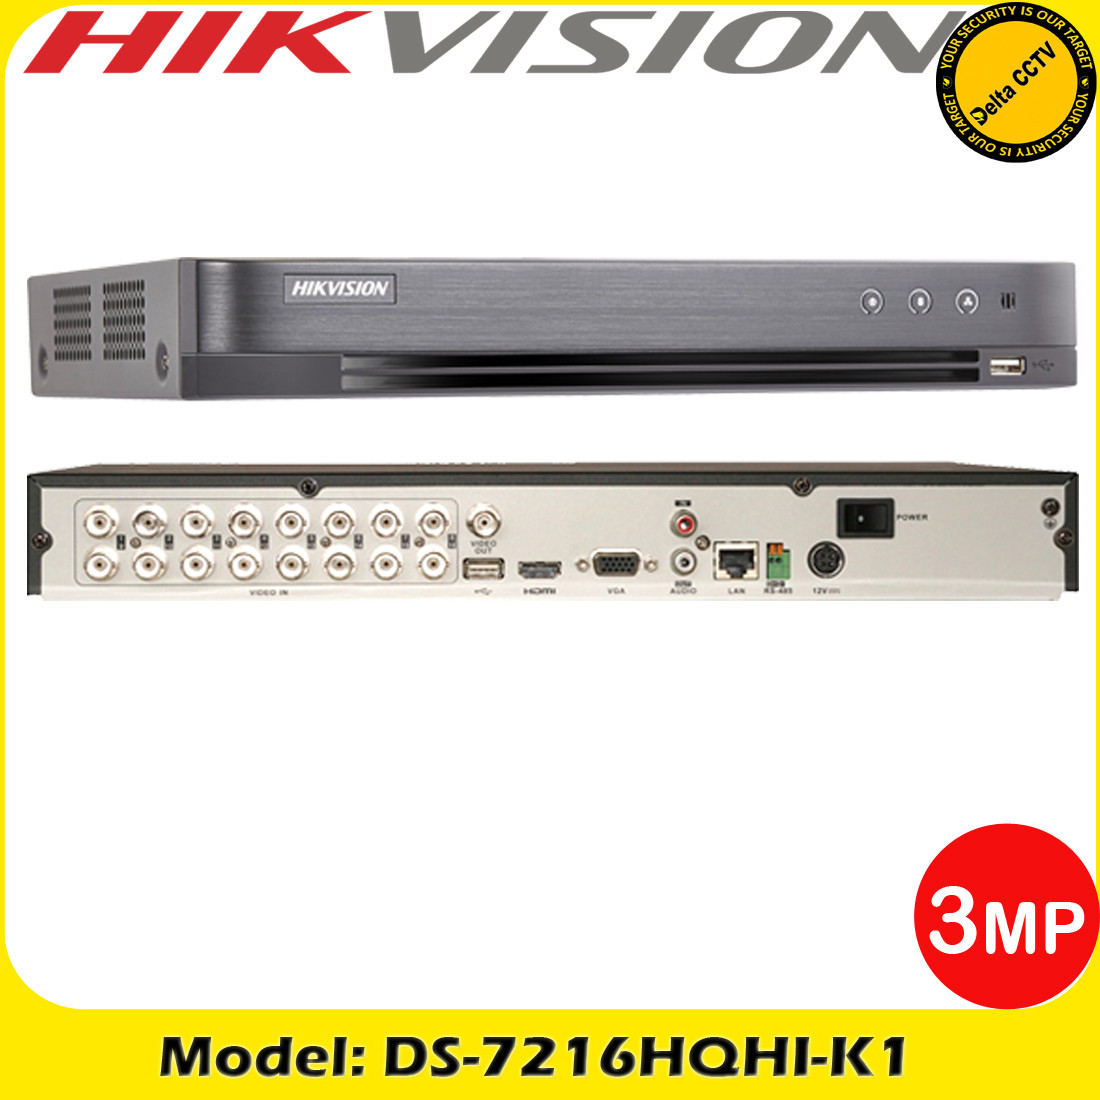 Hikvision DS-7216HQHI-K1 16 Channel Turbo HD DVR 3MP 4-IN-1